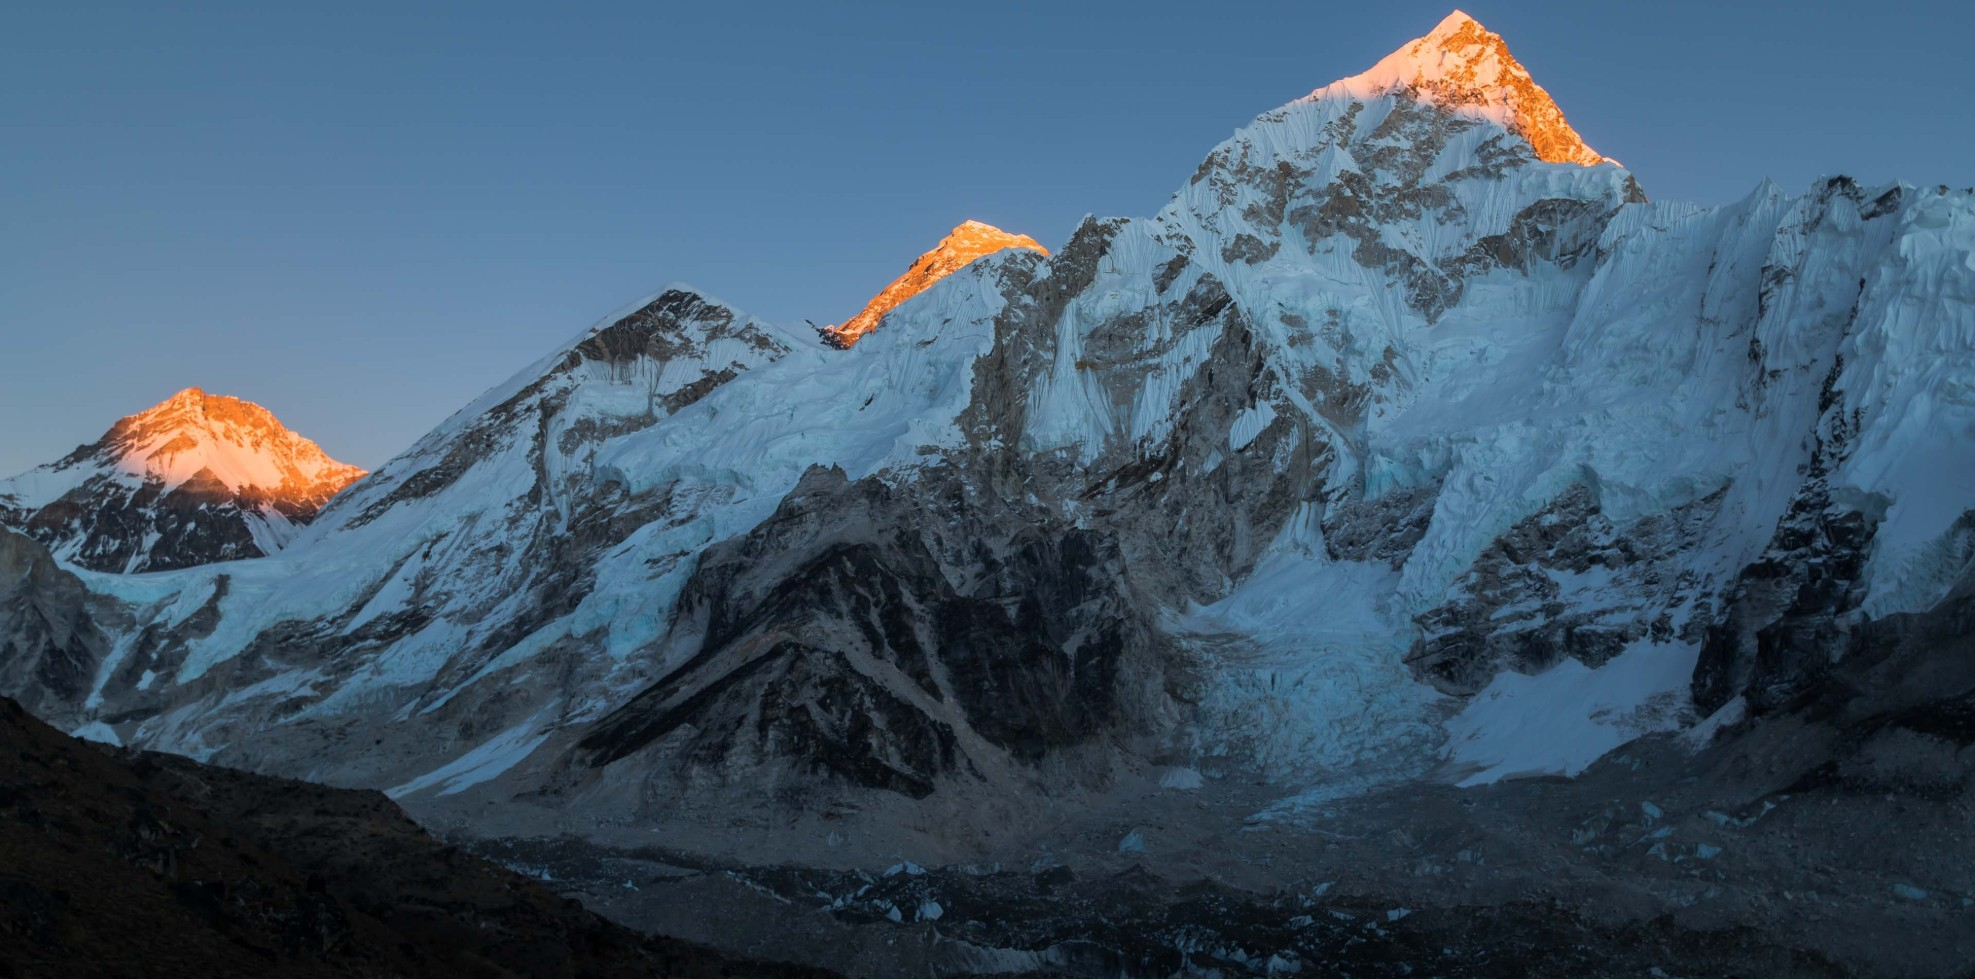 Trek 3 High Passes in Everest Region (16 Days)